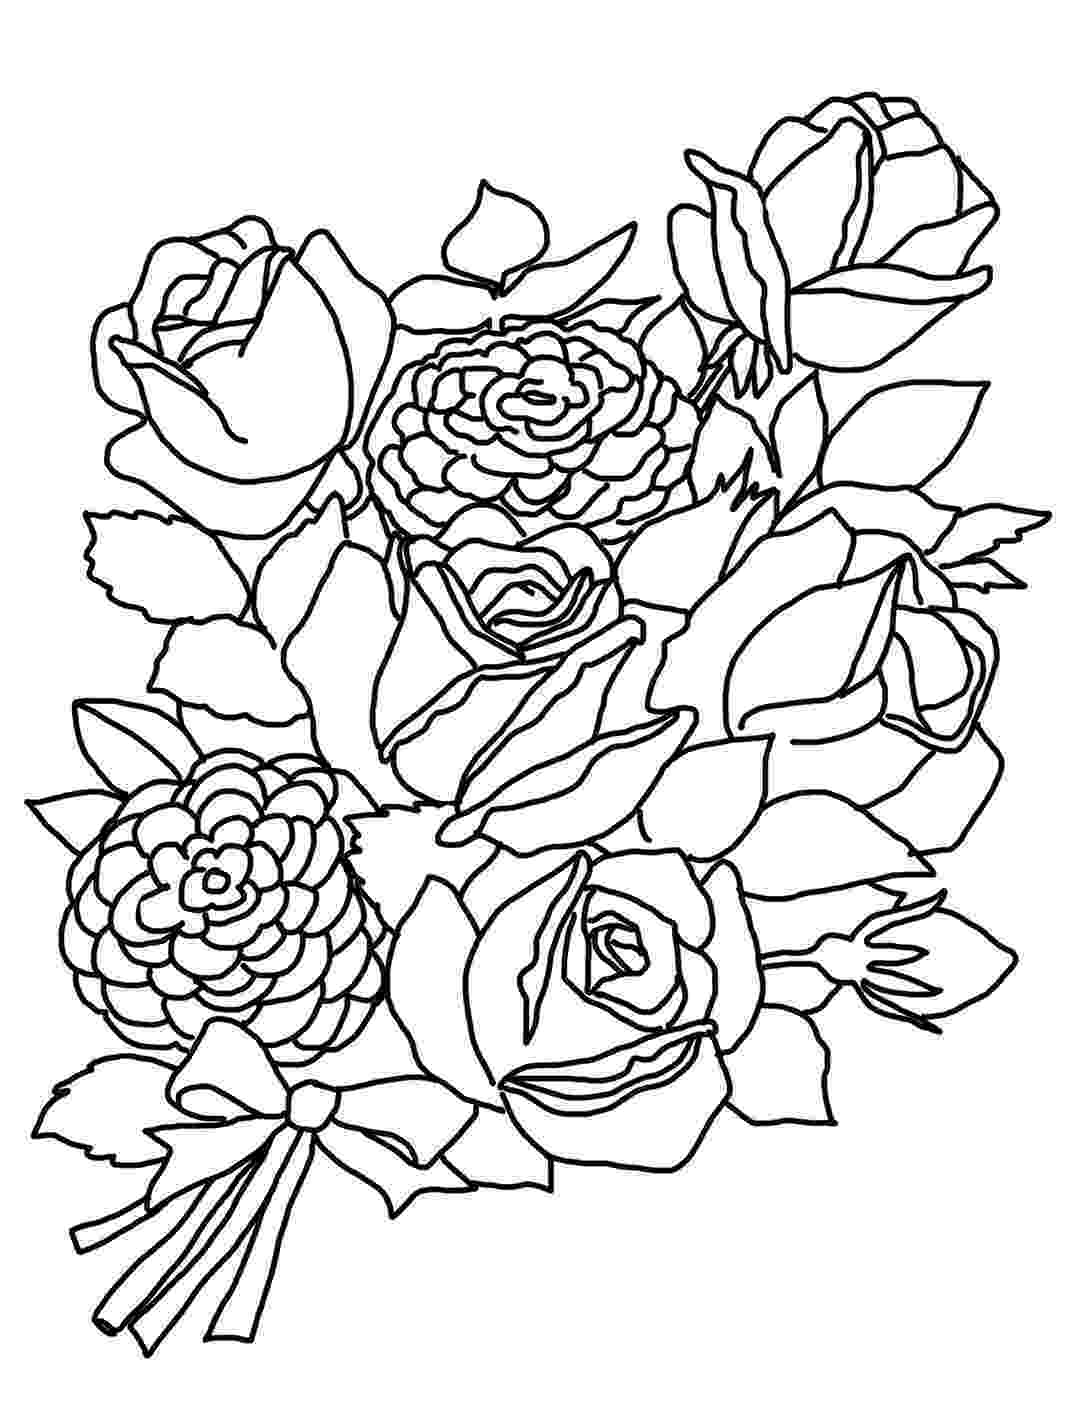 rose flower coloring page rose flower coloring pages getcoloringpagescom page coloring flower rose